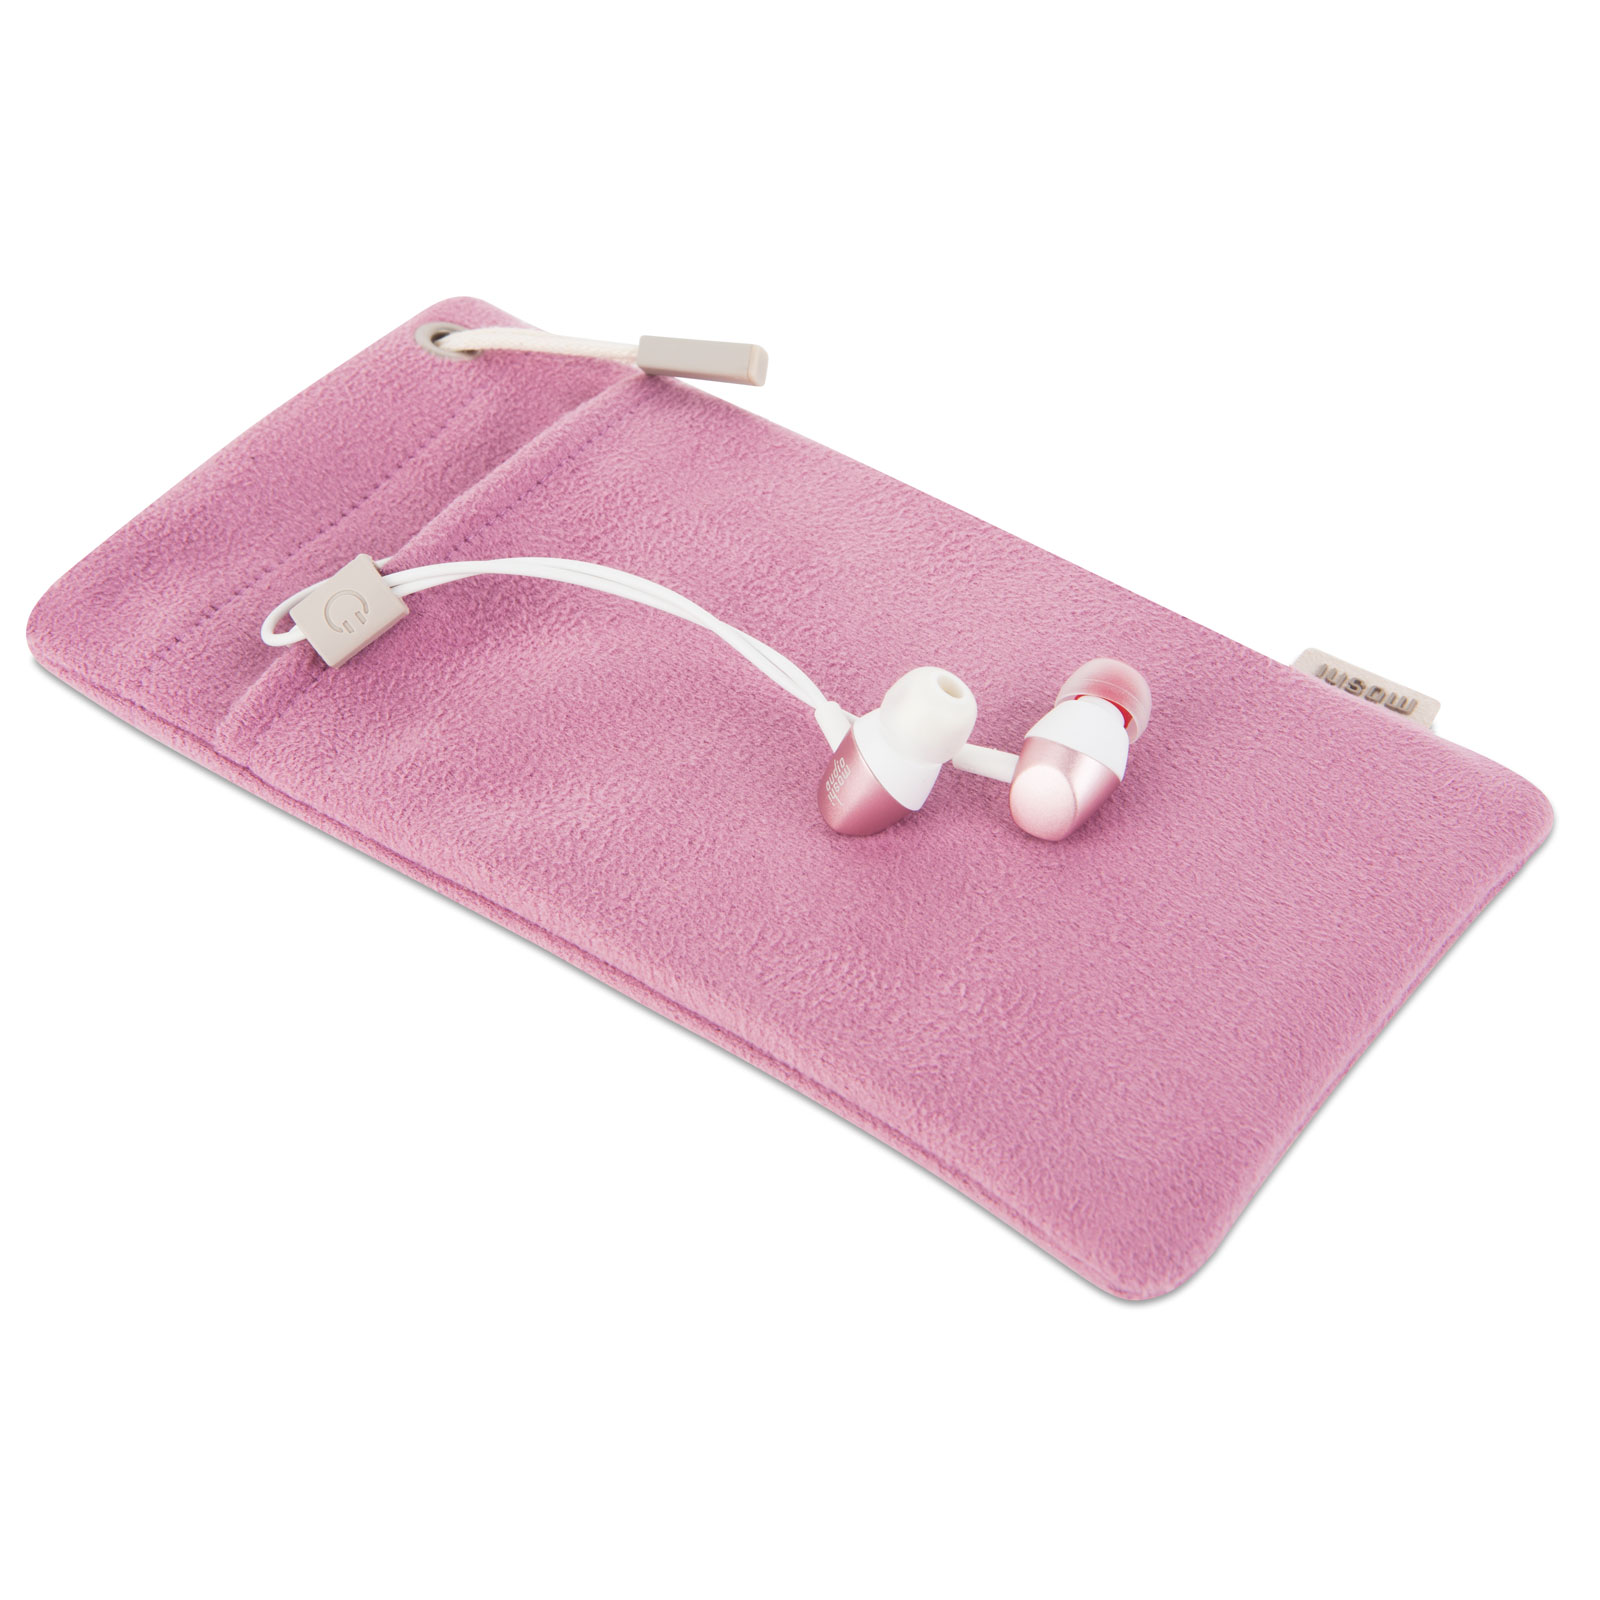 iPouch Plus Microfiber Carrying Case-4-thumbnail